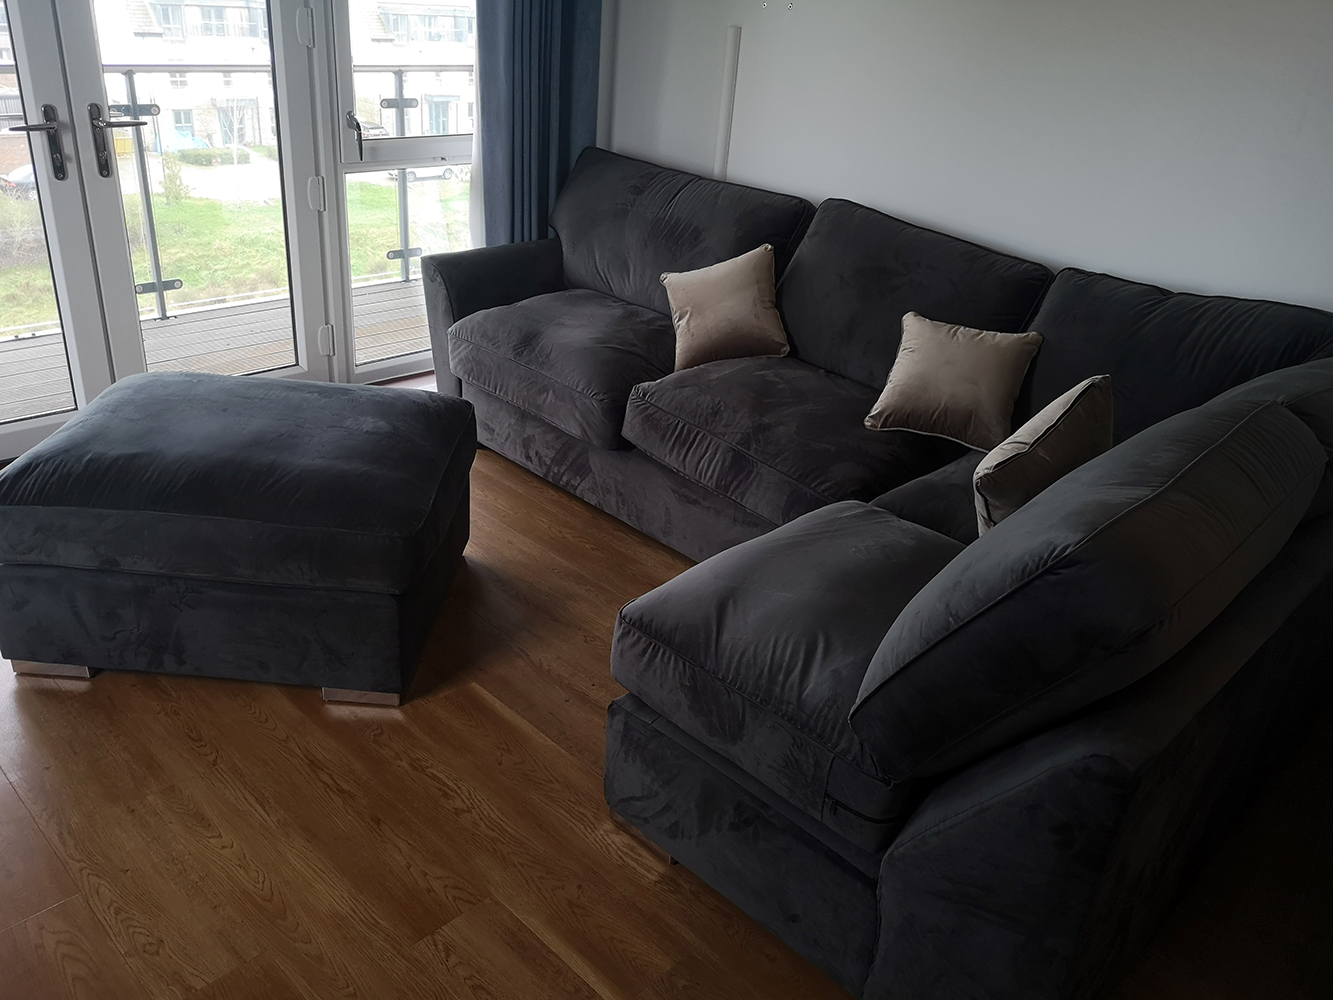 Majestic - graphite corner sofa in English style with fixed backrest cushions